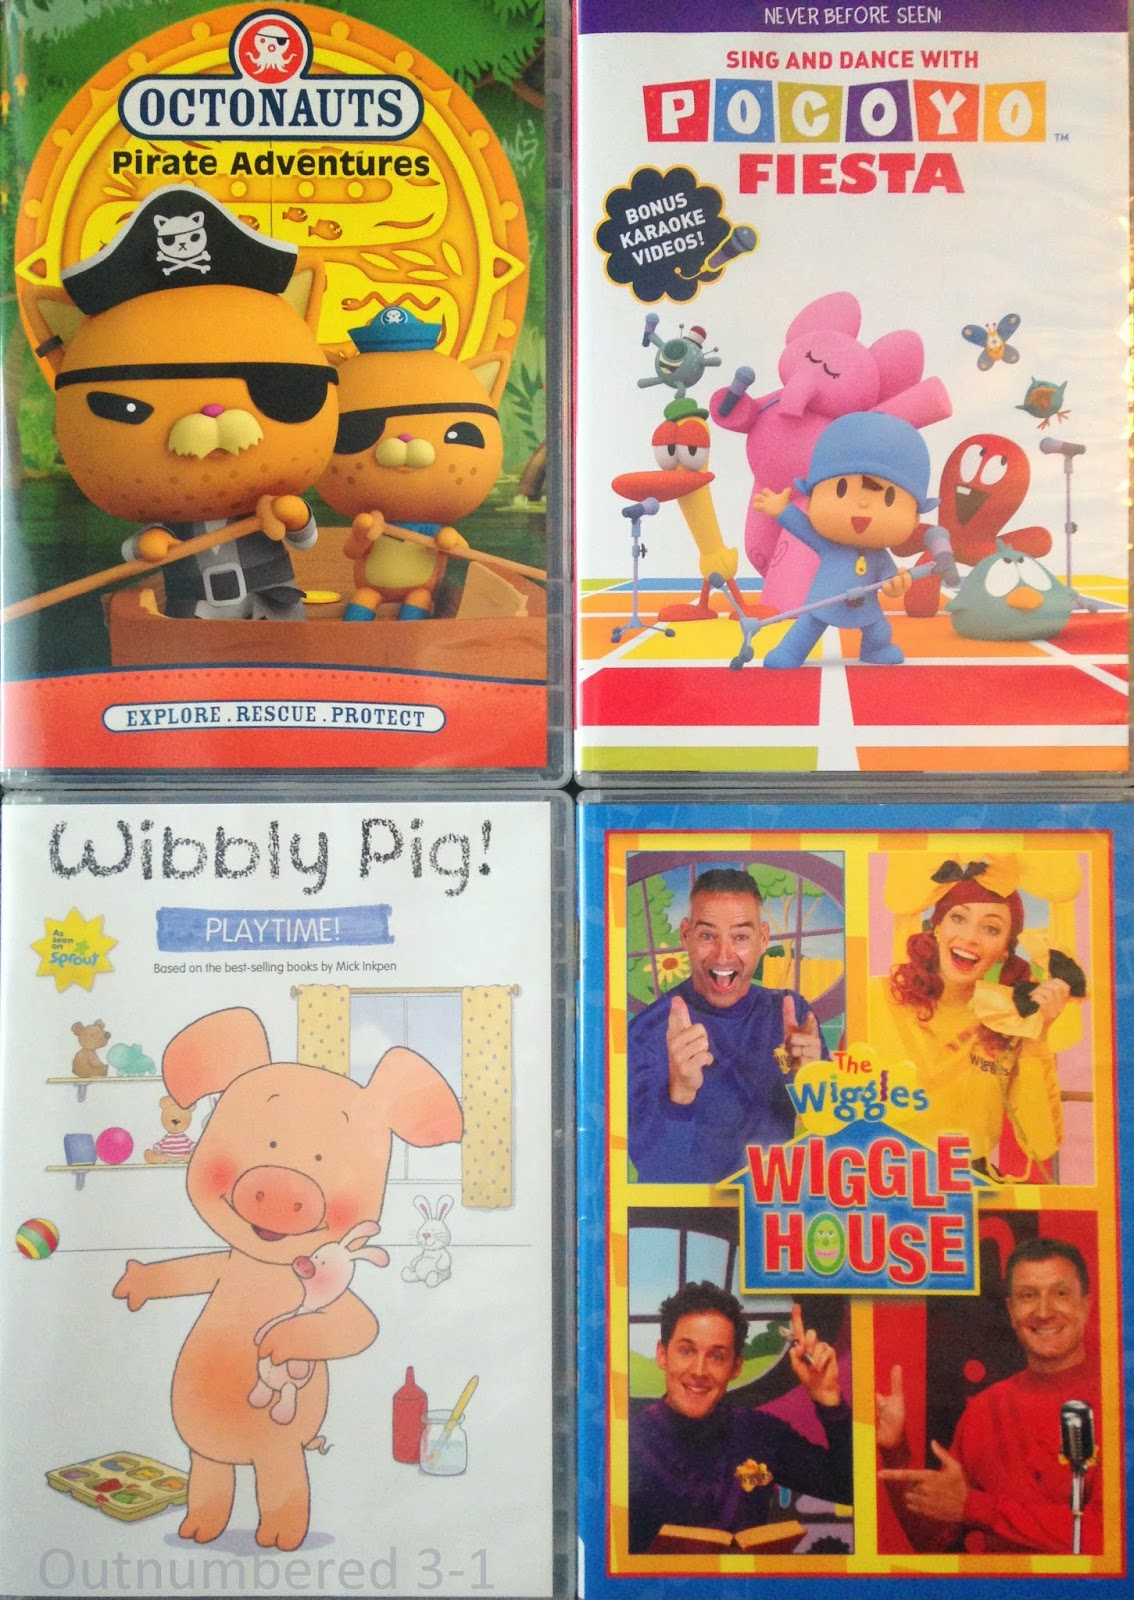 Octonauts: Pirate Adventures, Pocoyo: Fiesta, Wibbly Pig: Playtime!, The Wiggles: Wiggles House Who's in The Wiggles' House?, Giveaway